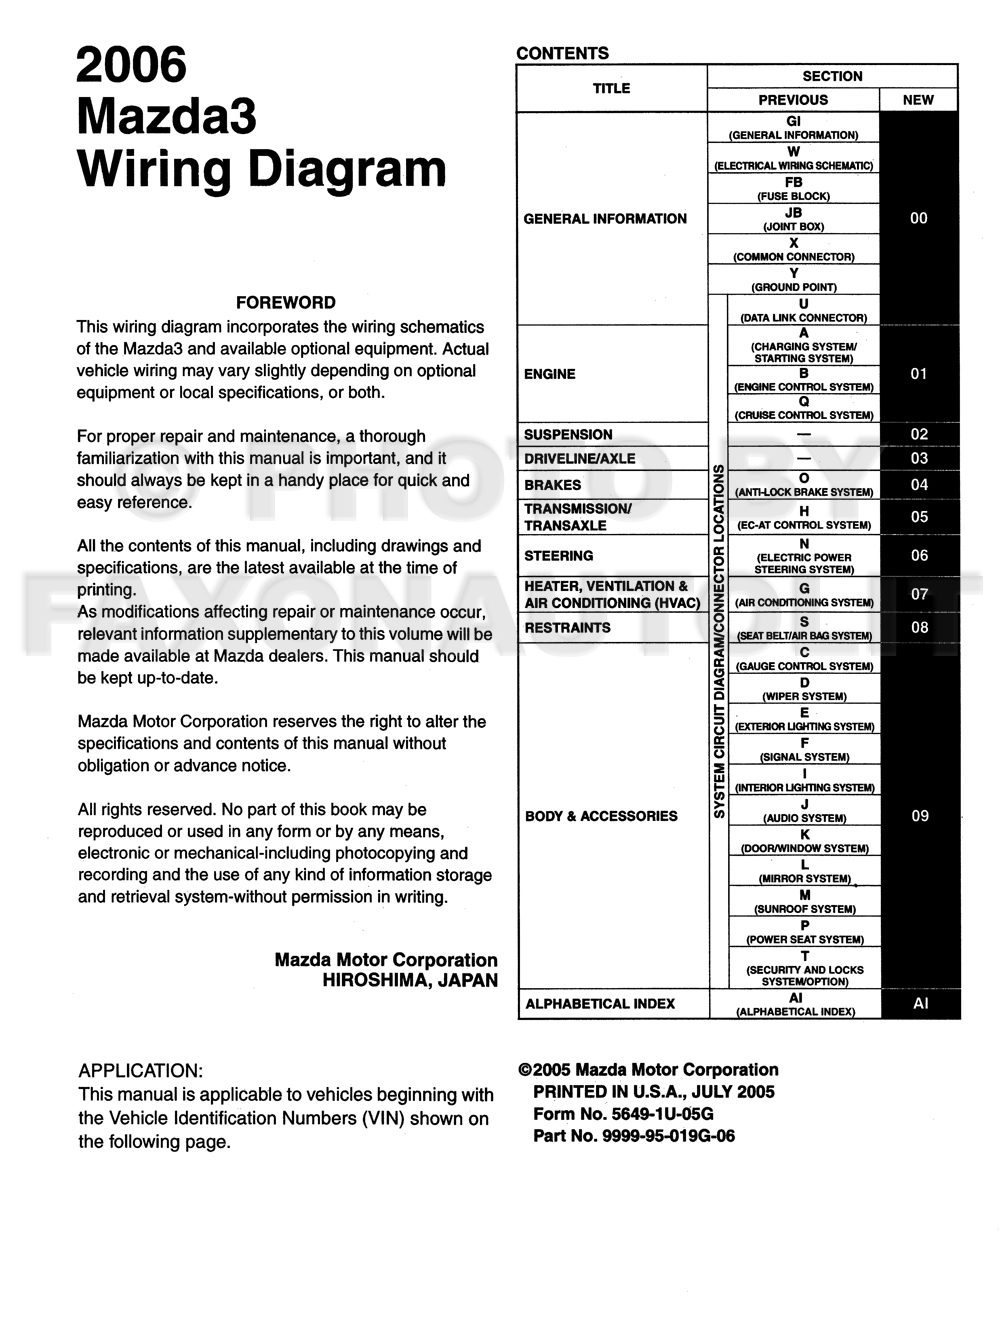 2006 mazda 3 wiring diagram original mazda3 wiring diagram original mazda3 click on thumbnail to zoom asfbconference2016 Gallery